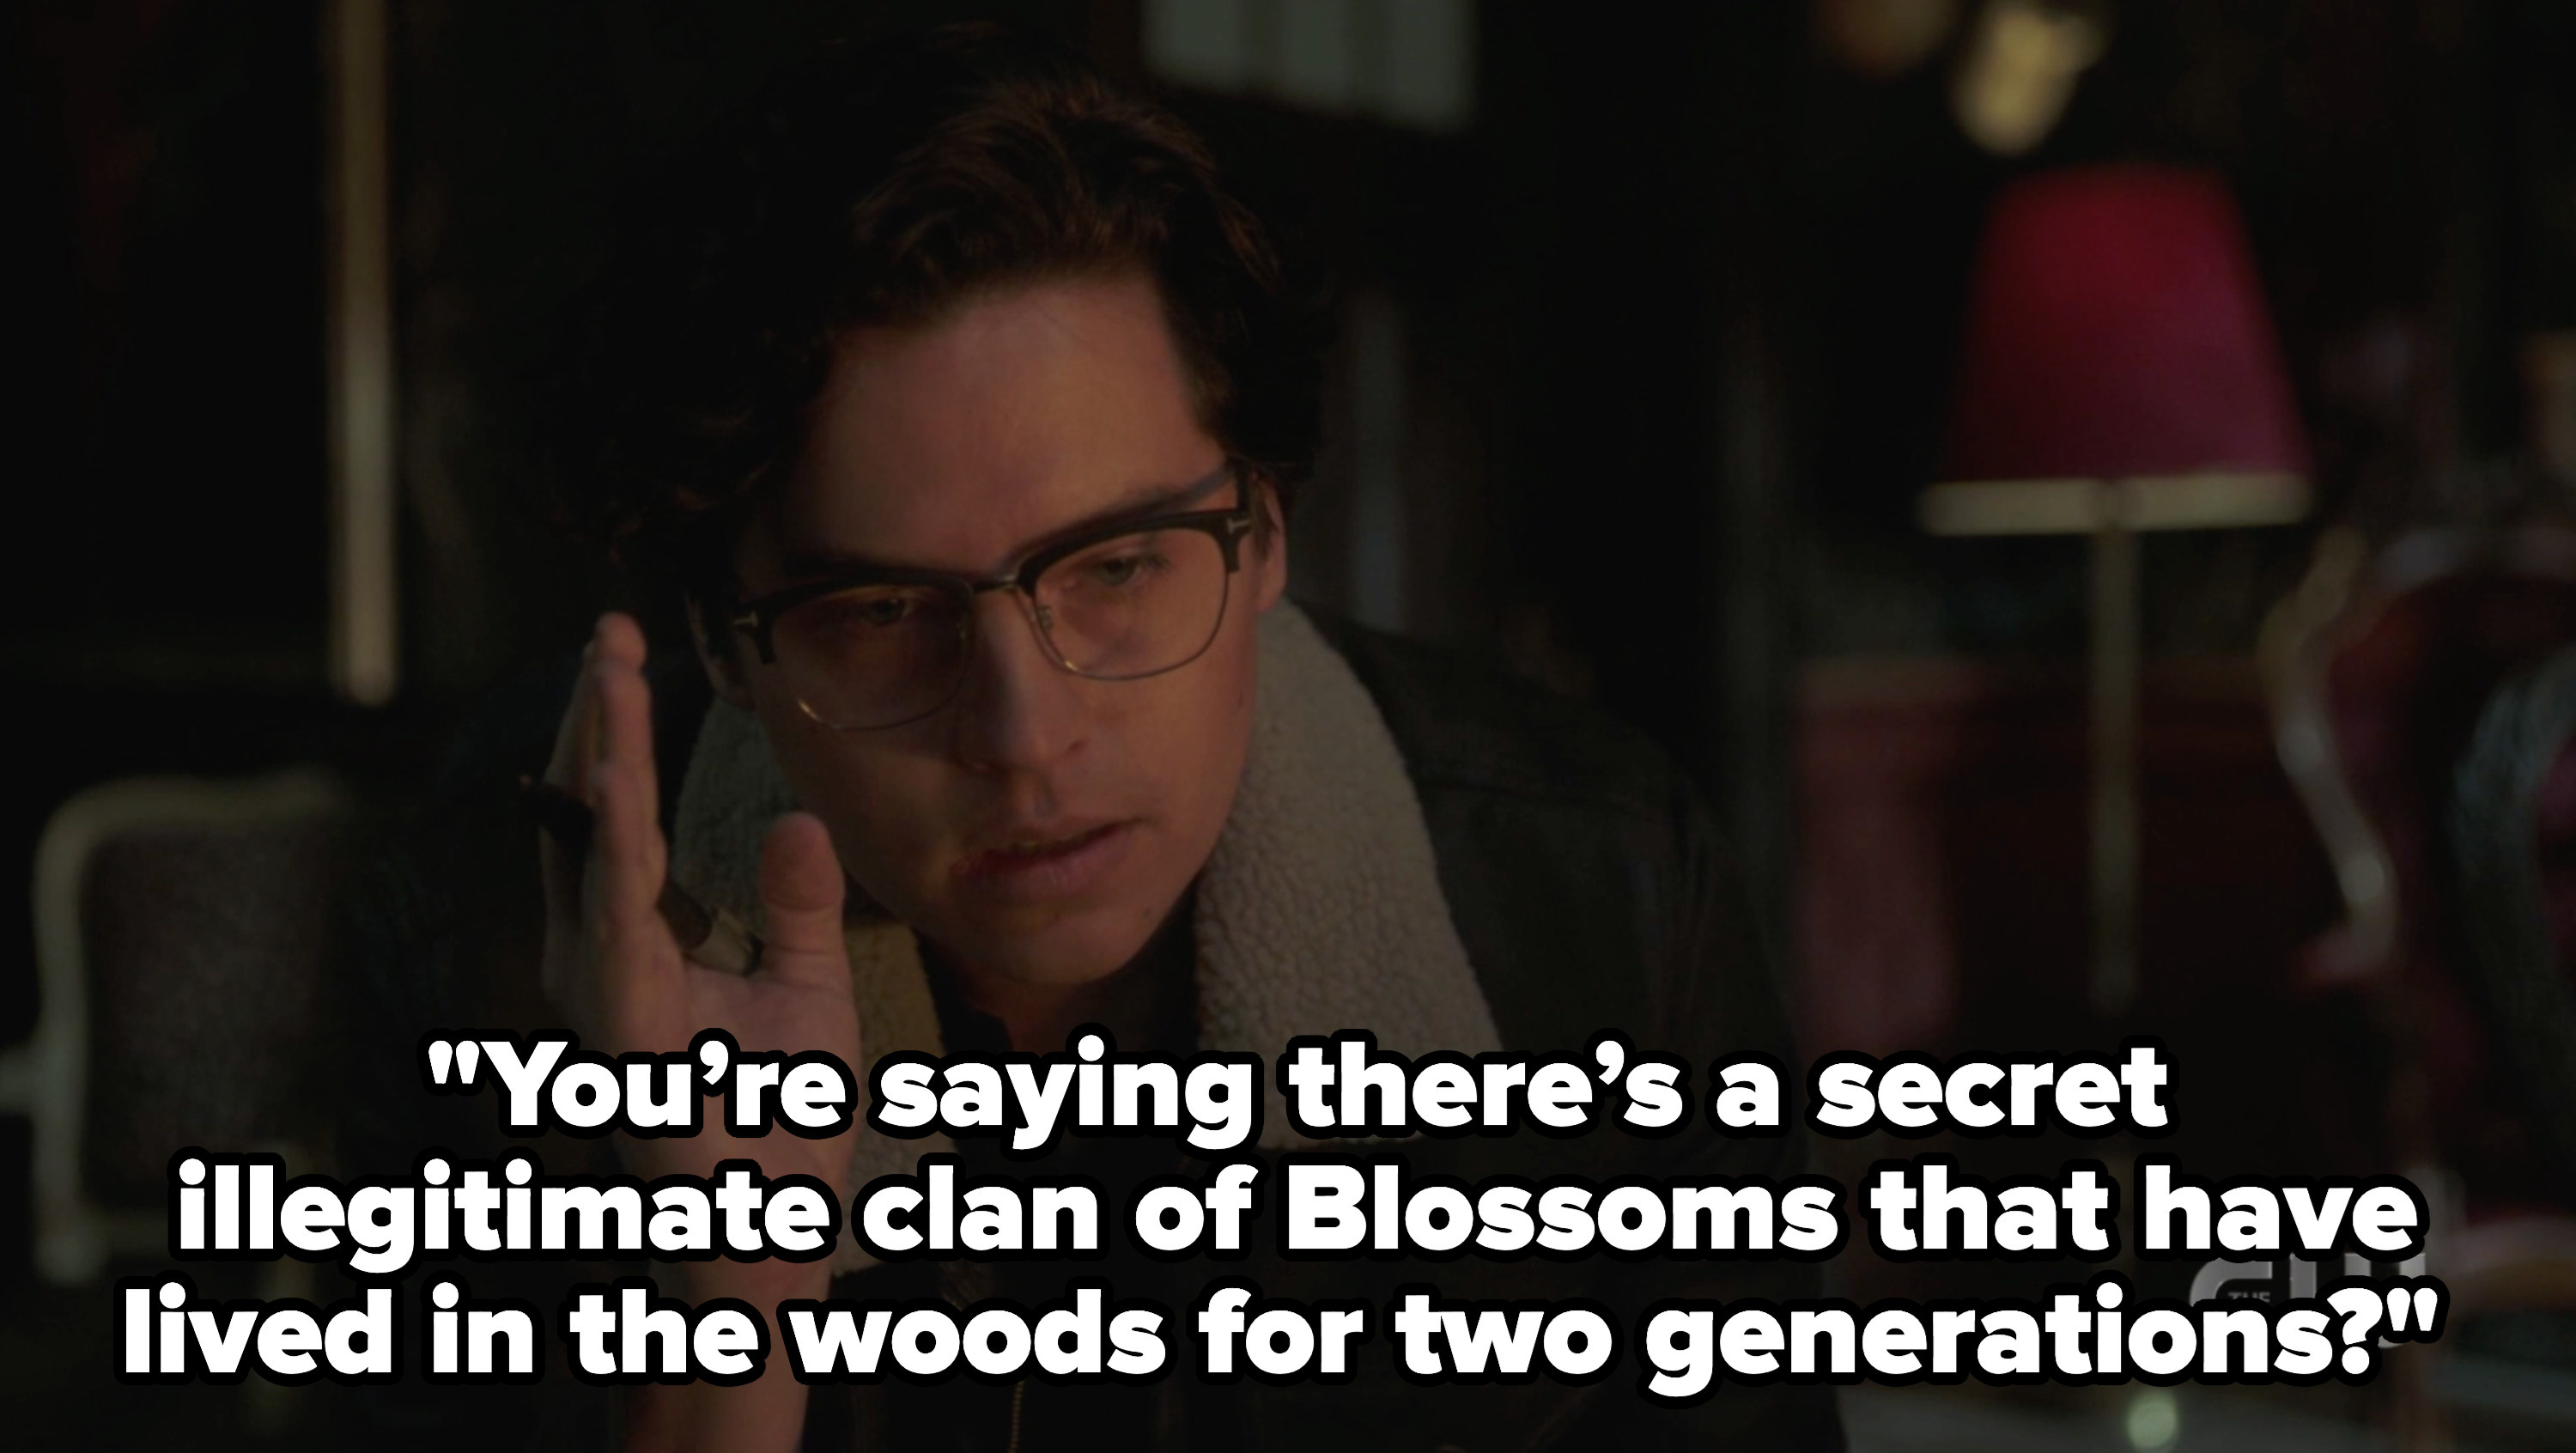 Jughead asks you're saying there's a secret illegitimate clan of Blossoms that have lived in the woods for two generations